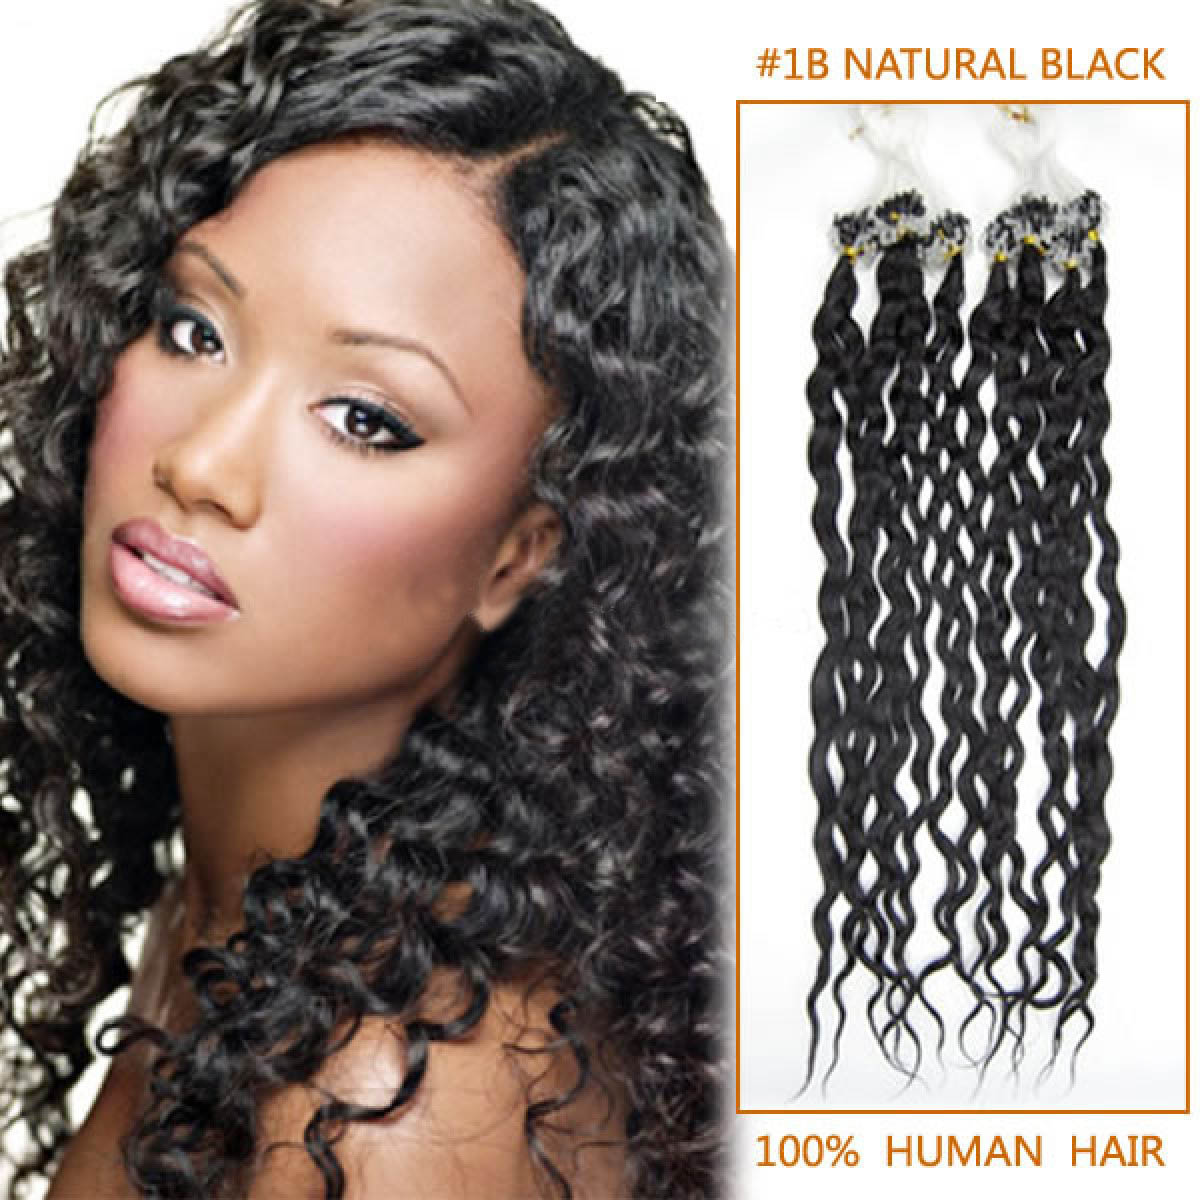 Inch sophisticated 1b natural black curly micro loop hair 22 inch sophisticated 1b natural black curly micro loop hair extensions 100 strands pmusecretfo Image collections